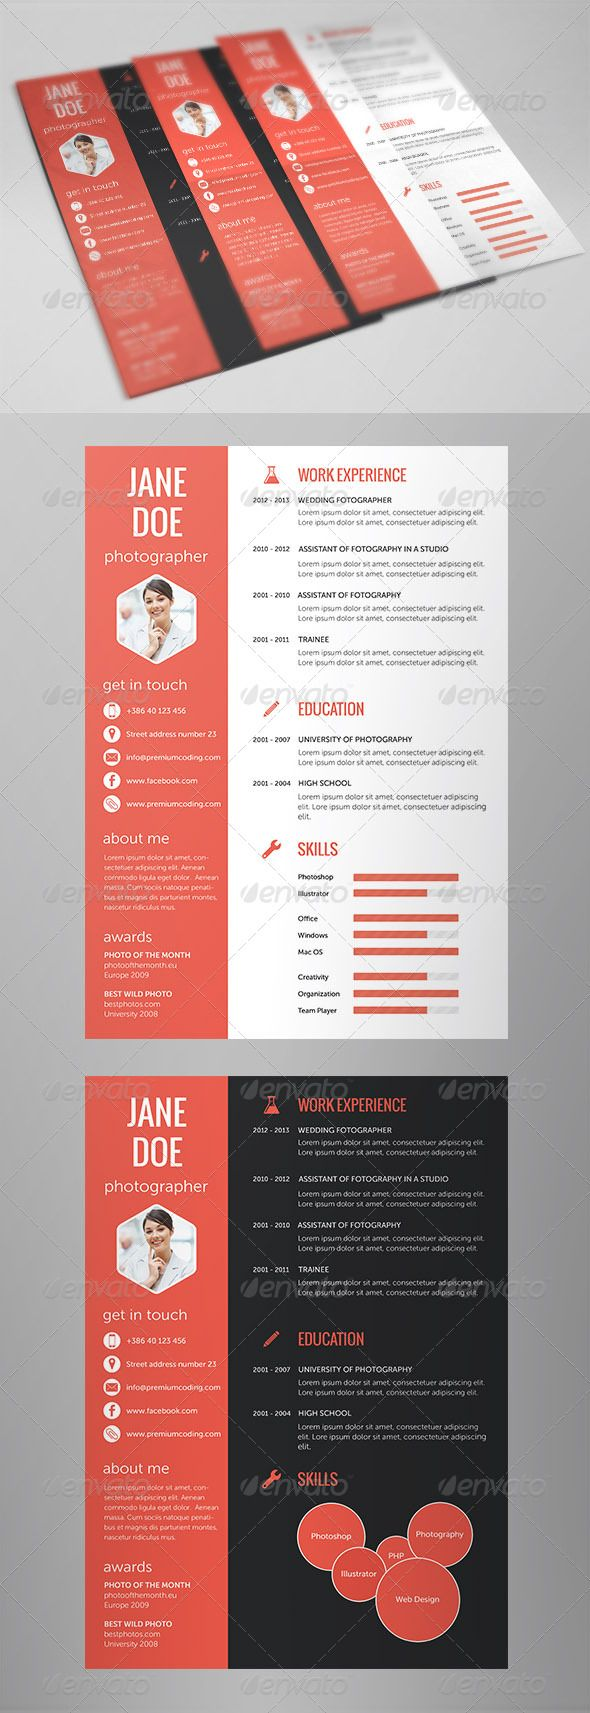 just published a flat design resume which will help you